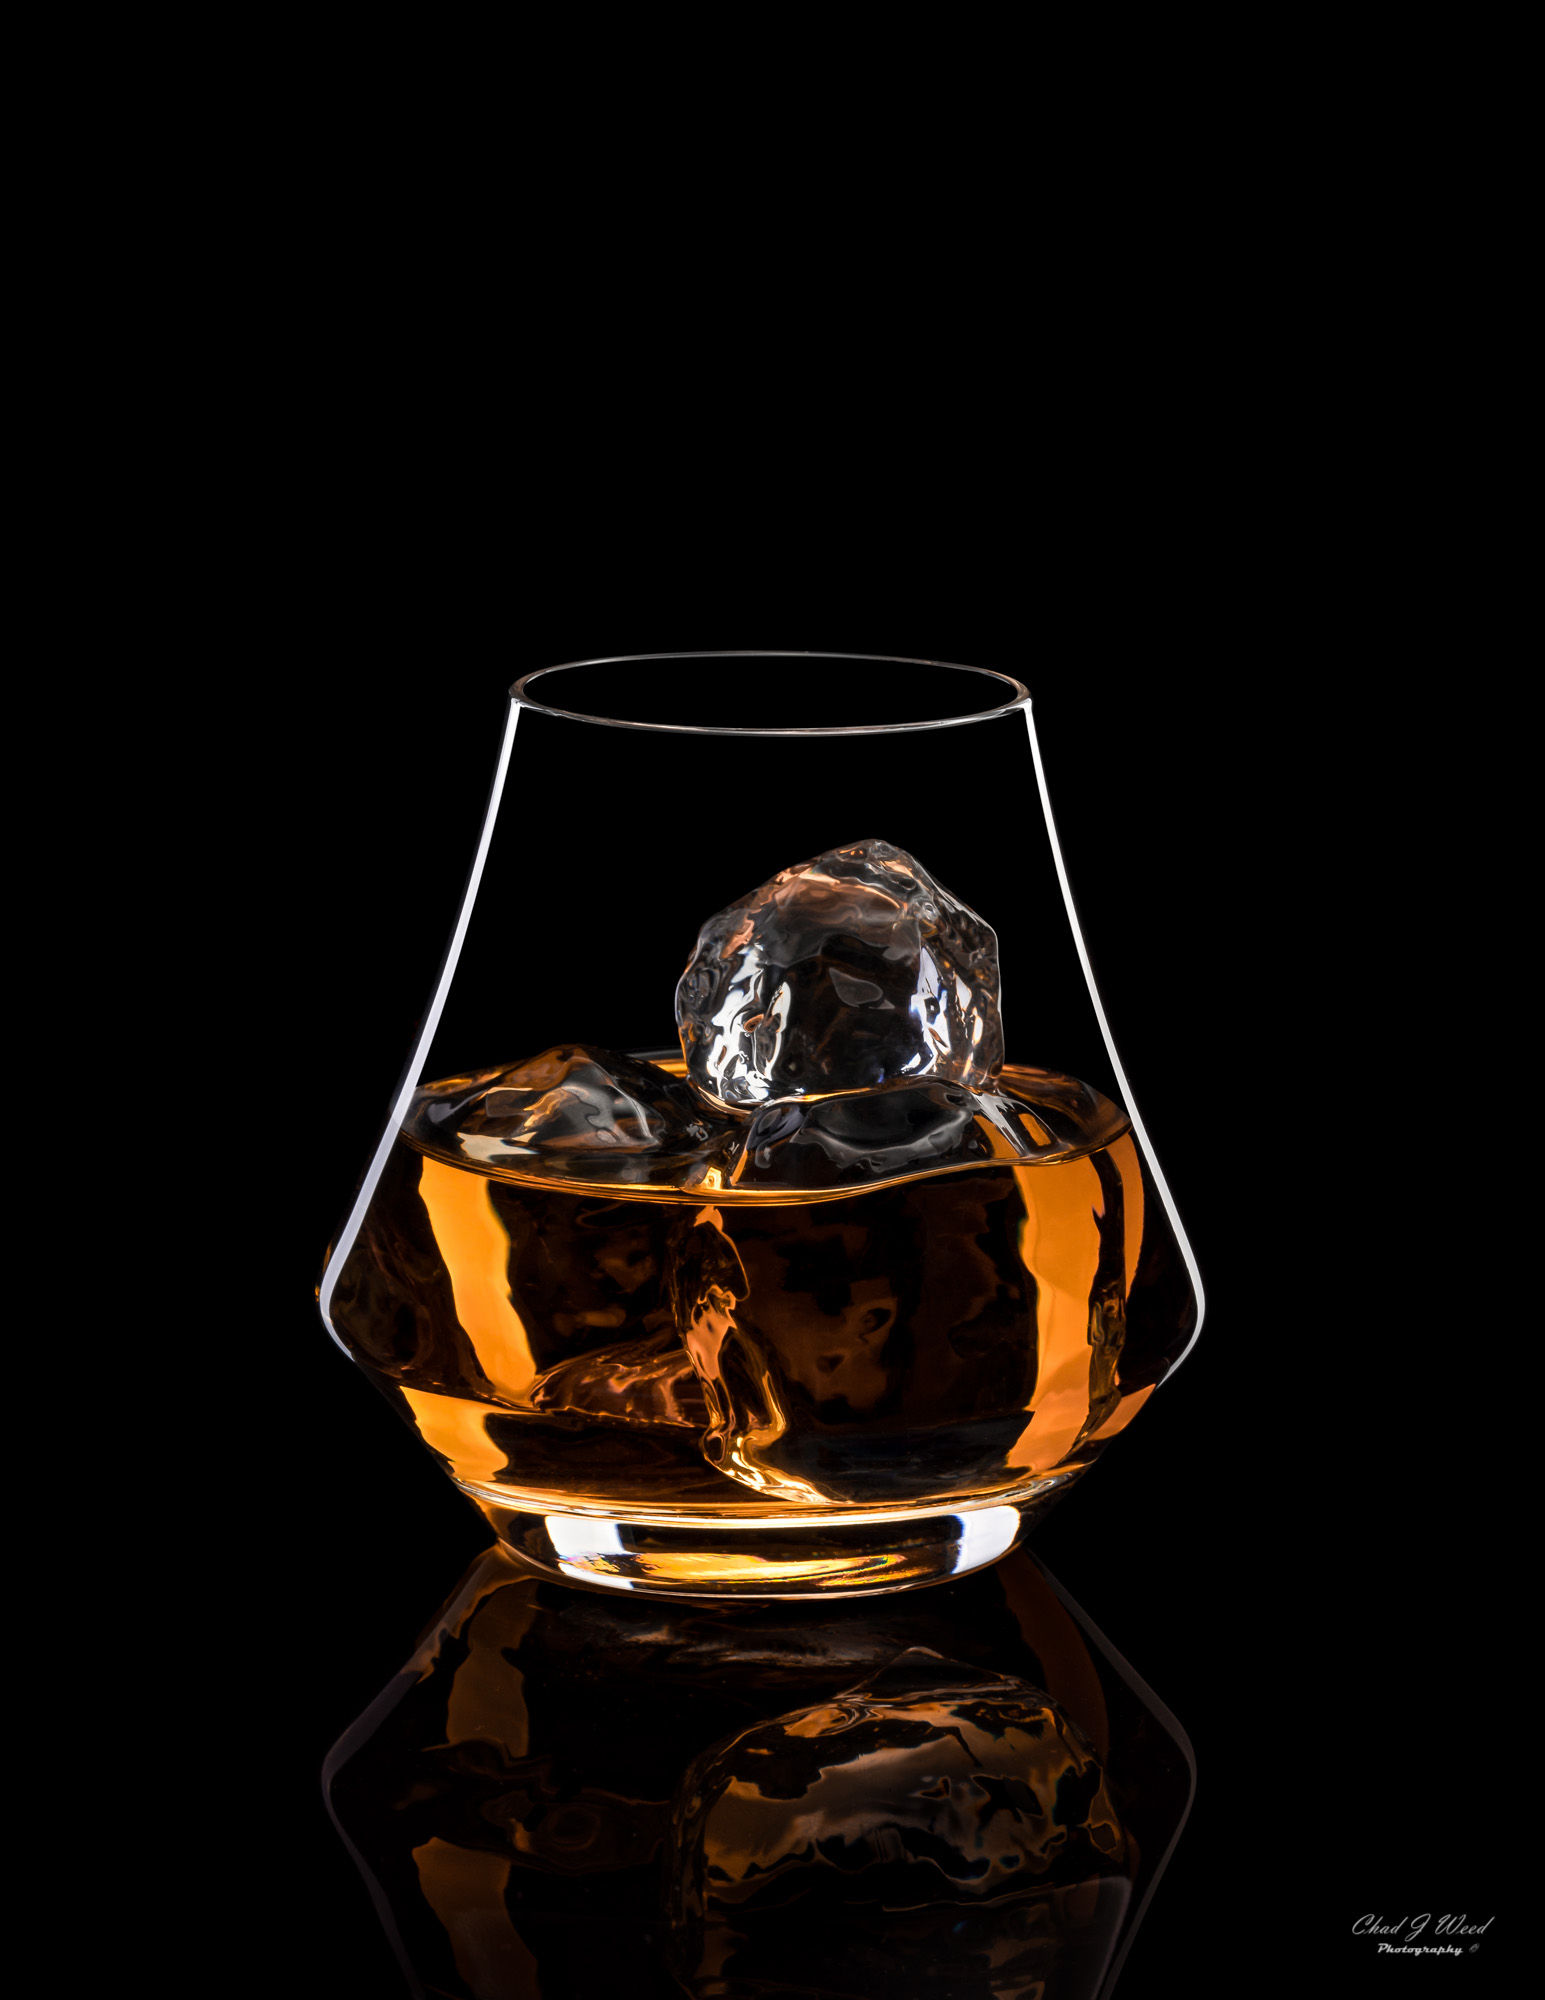 Crown Royal XO Whisky Glass by  Arizona Commercial Beverage Photographer Chad J Weed